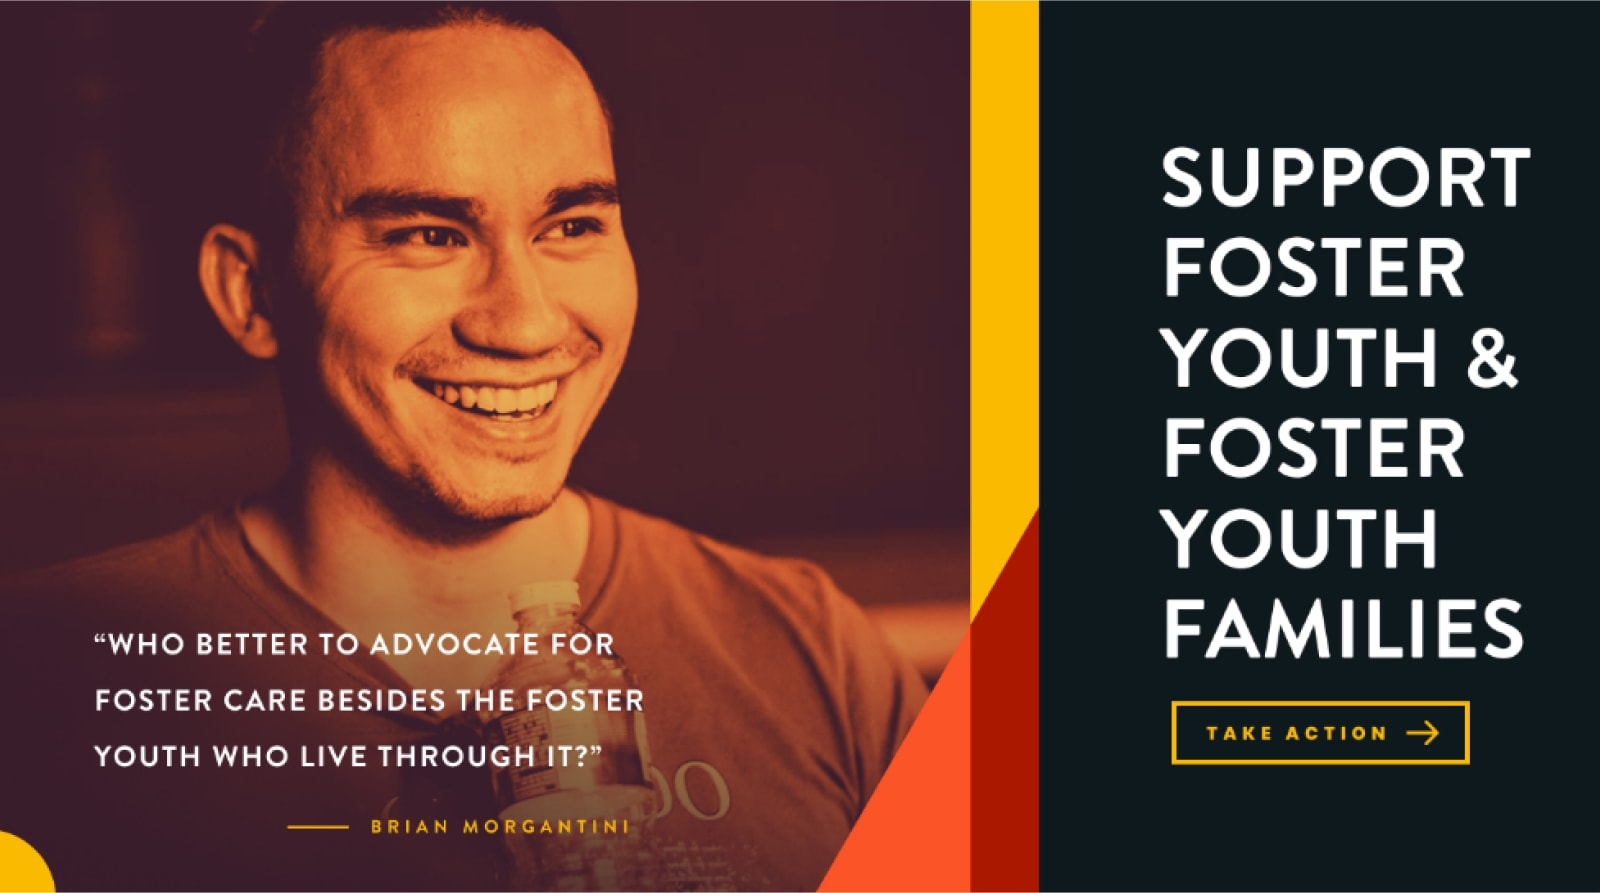 Brave Factor Foster Youth Organizations